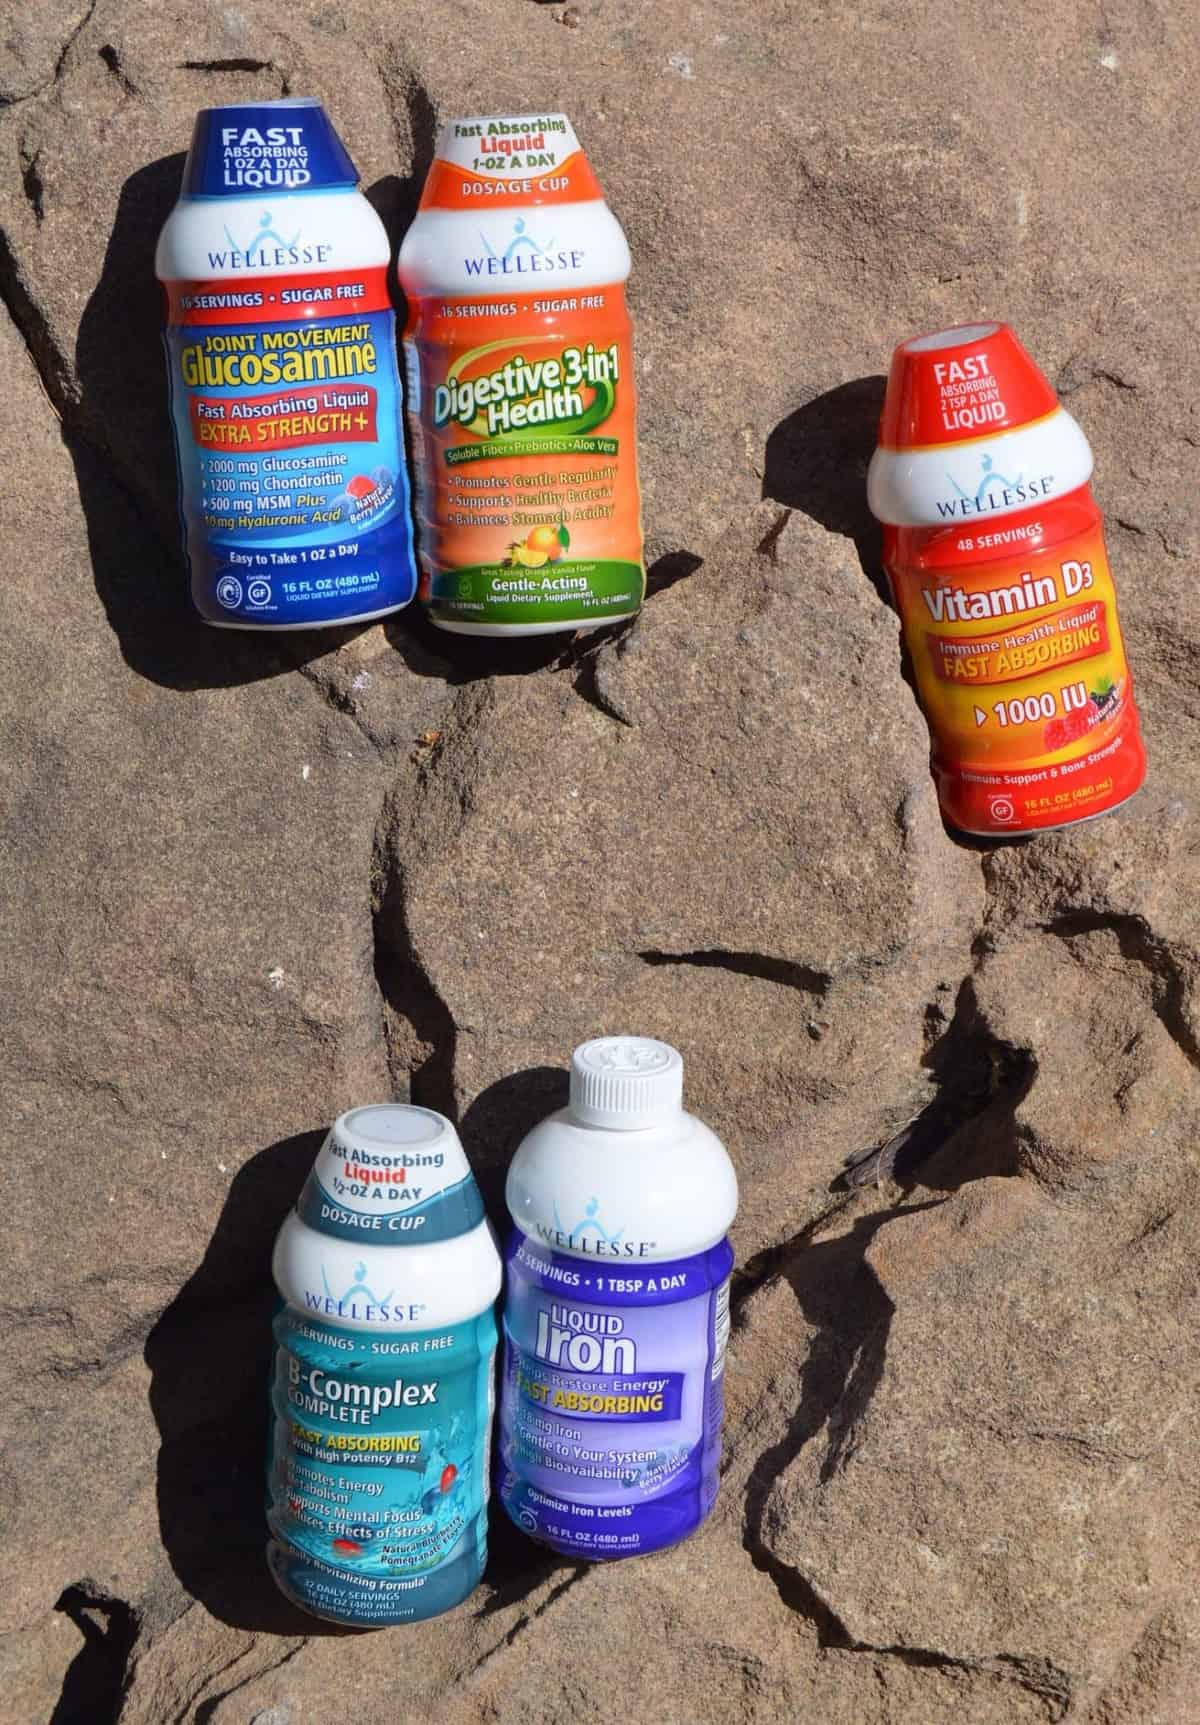 These are a few of my favorite GLUTEN-FREE things: Wellesse Supplements!